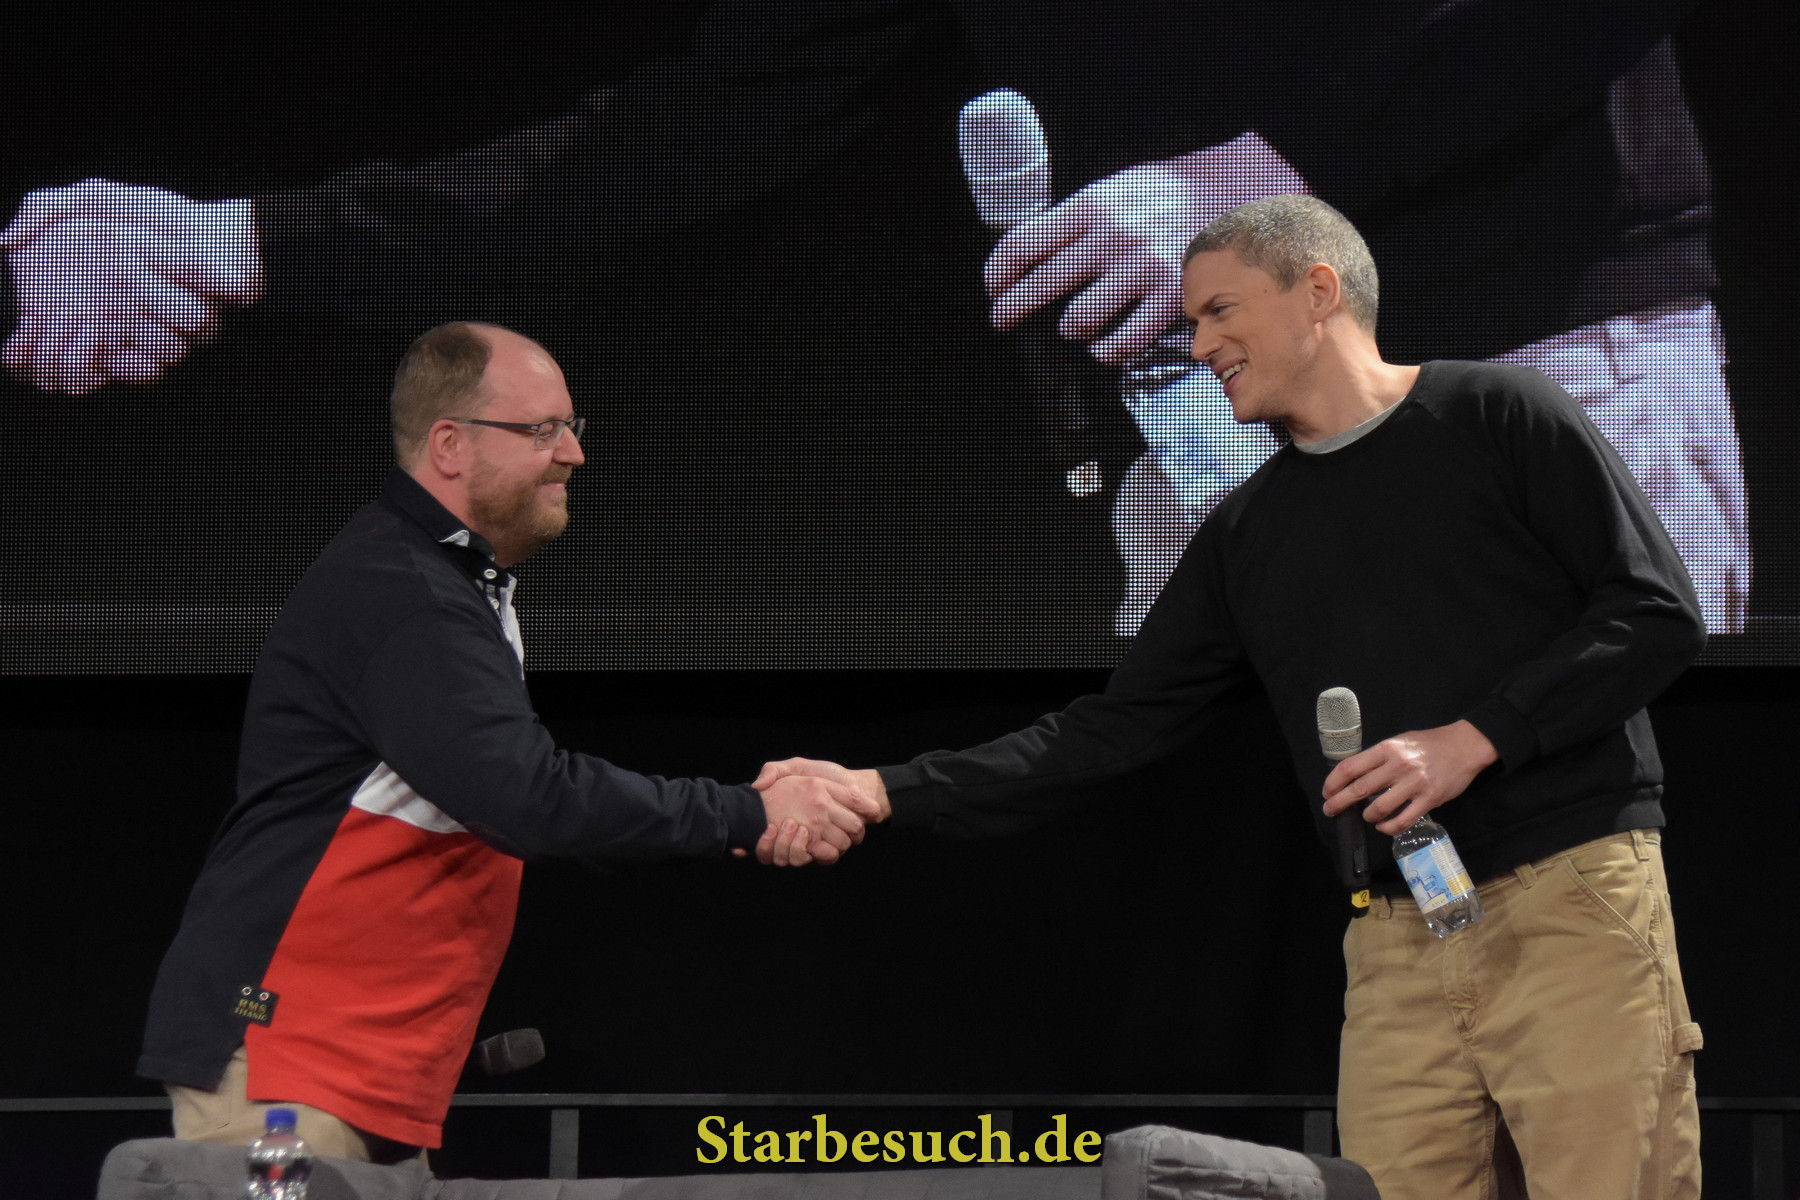 Dortmund, Germany - December 9th 2017: Gerrit Schmidt-Foß, german actor and voice actor (german voice Wentworth Miller), welcoming Wentworth Miller at German Comic Con Dortmund.